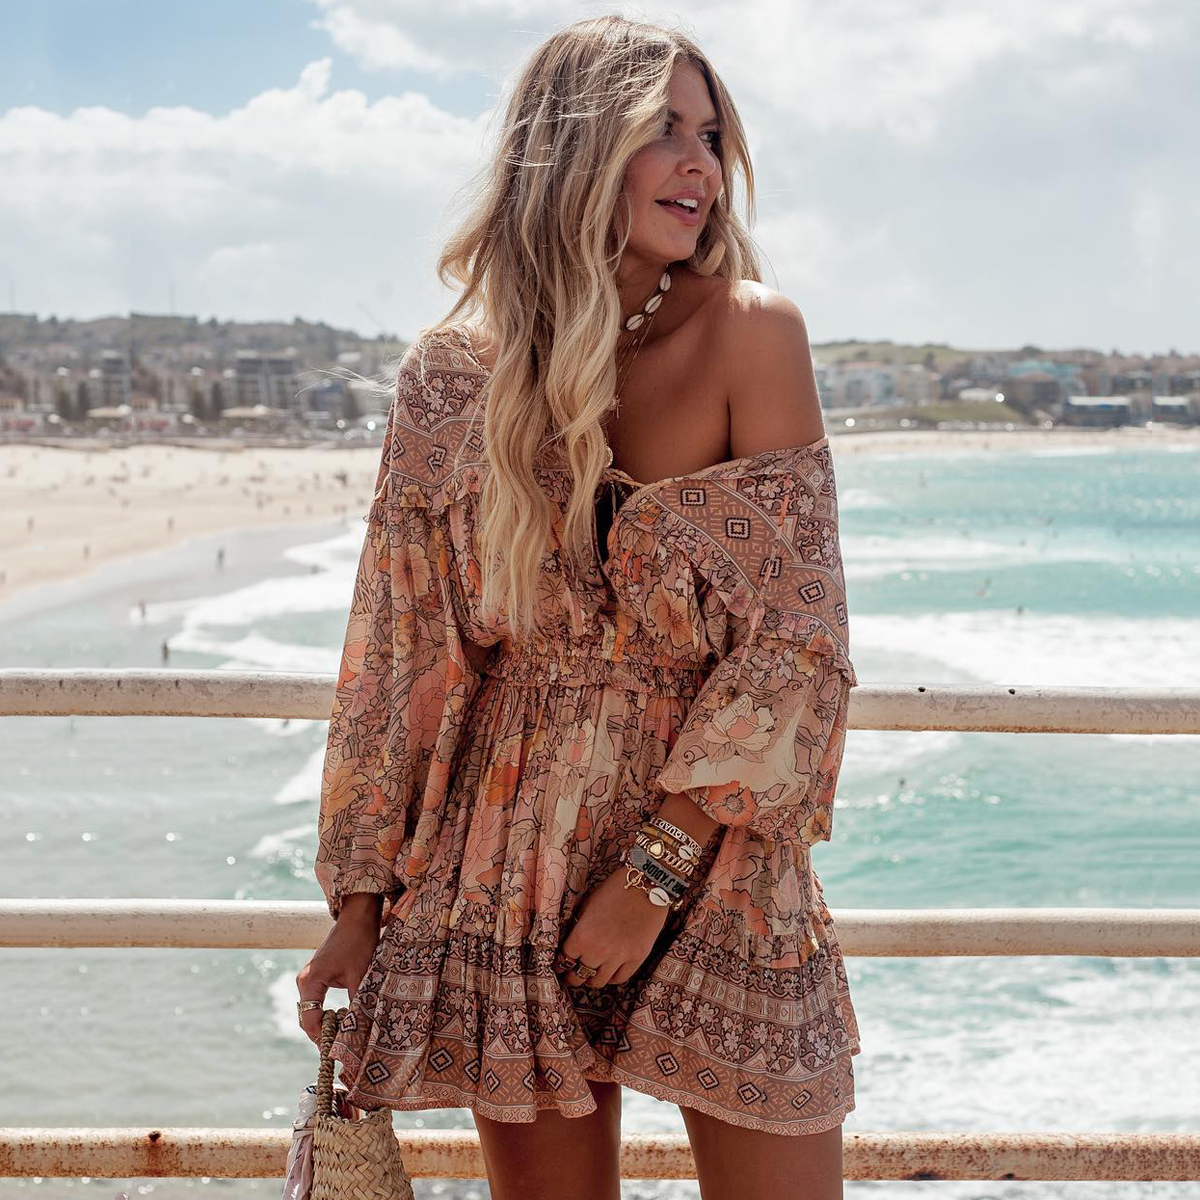 VZFF Frill Ruffle Boho Dress Gypsy Print Mini Dresses V-Neck Long Sleeve Beach Playdress 2019 Womens Clothing Female Vestidos